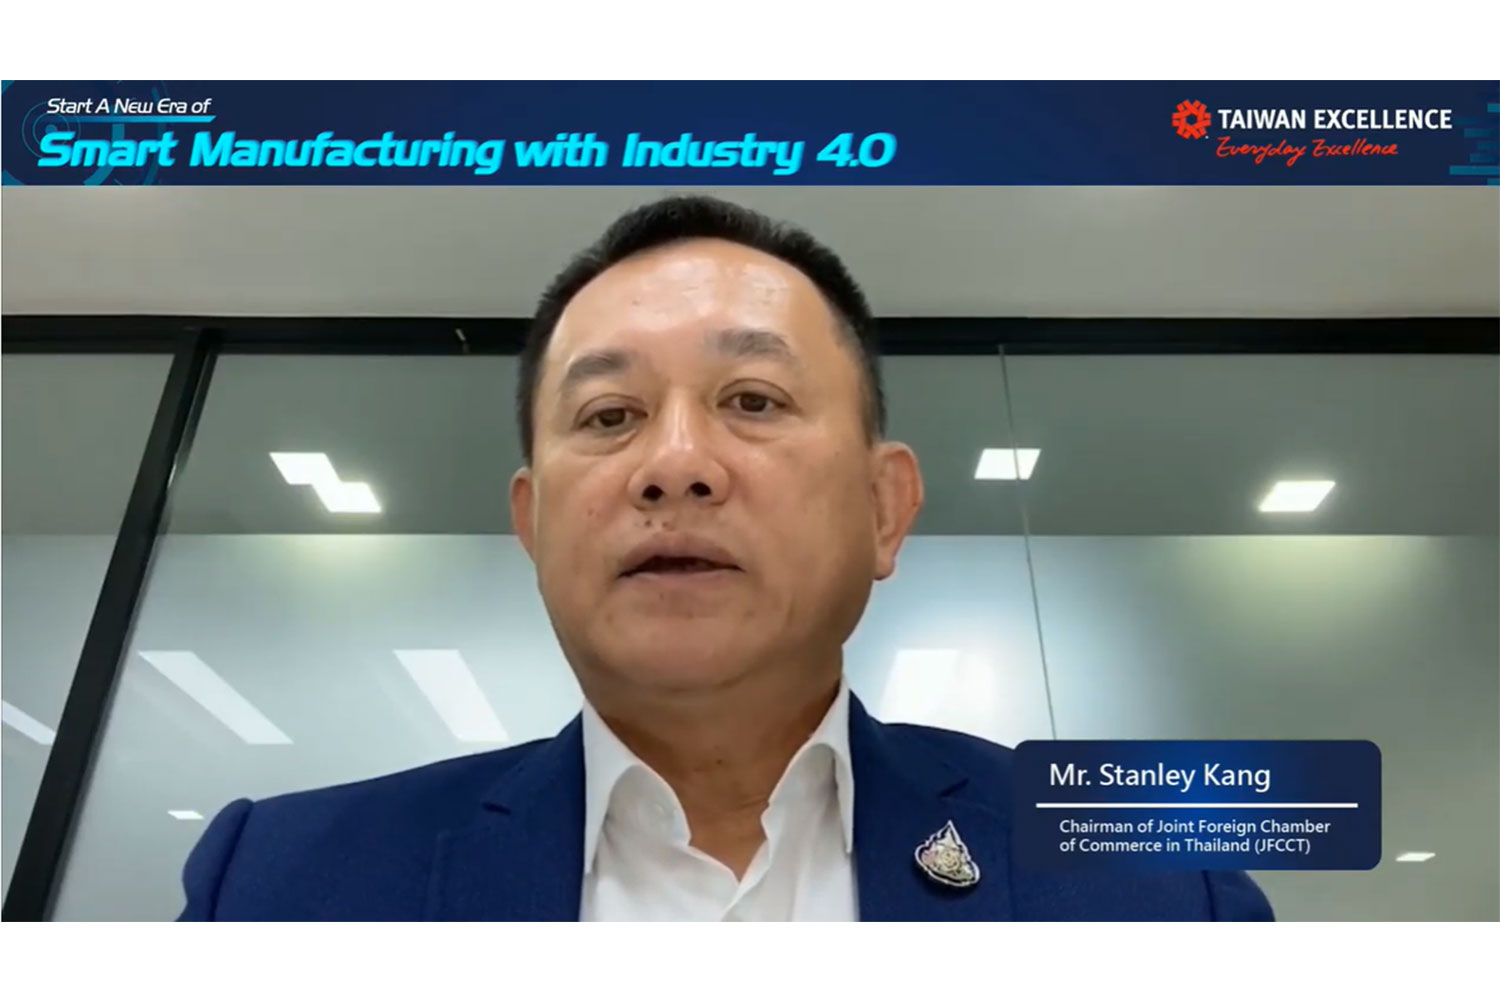 Automation and Industry 4.0 solutions from Taiwan are best choices for Thailand's industry upgrading